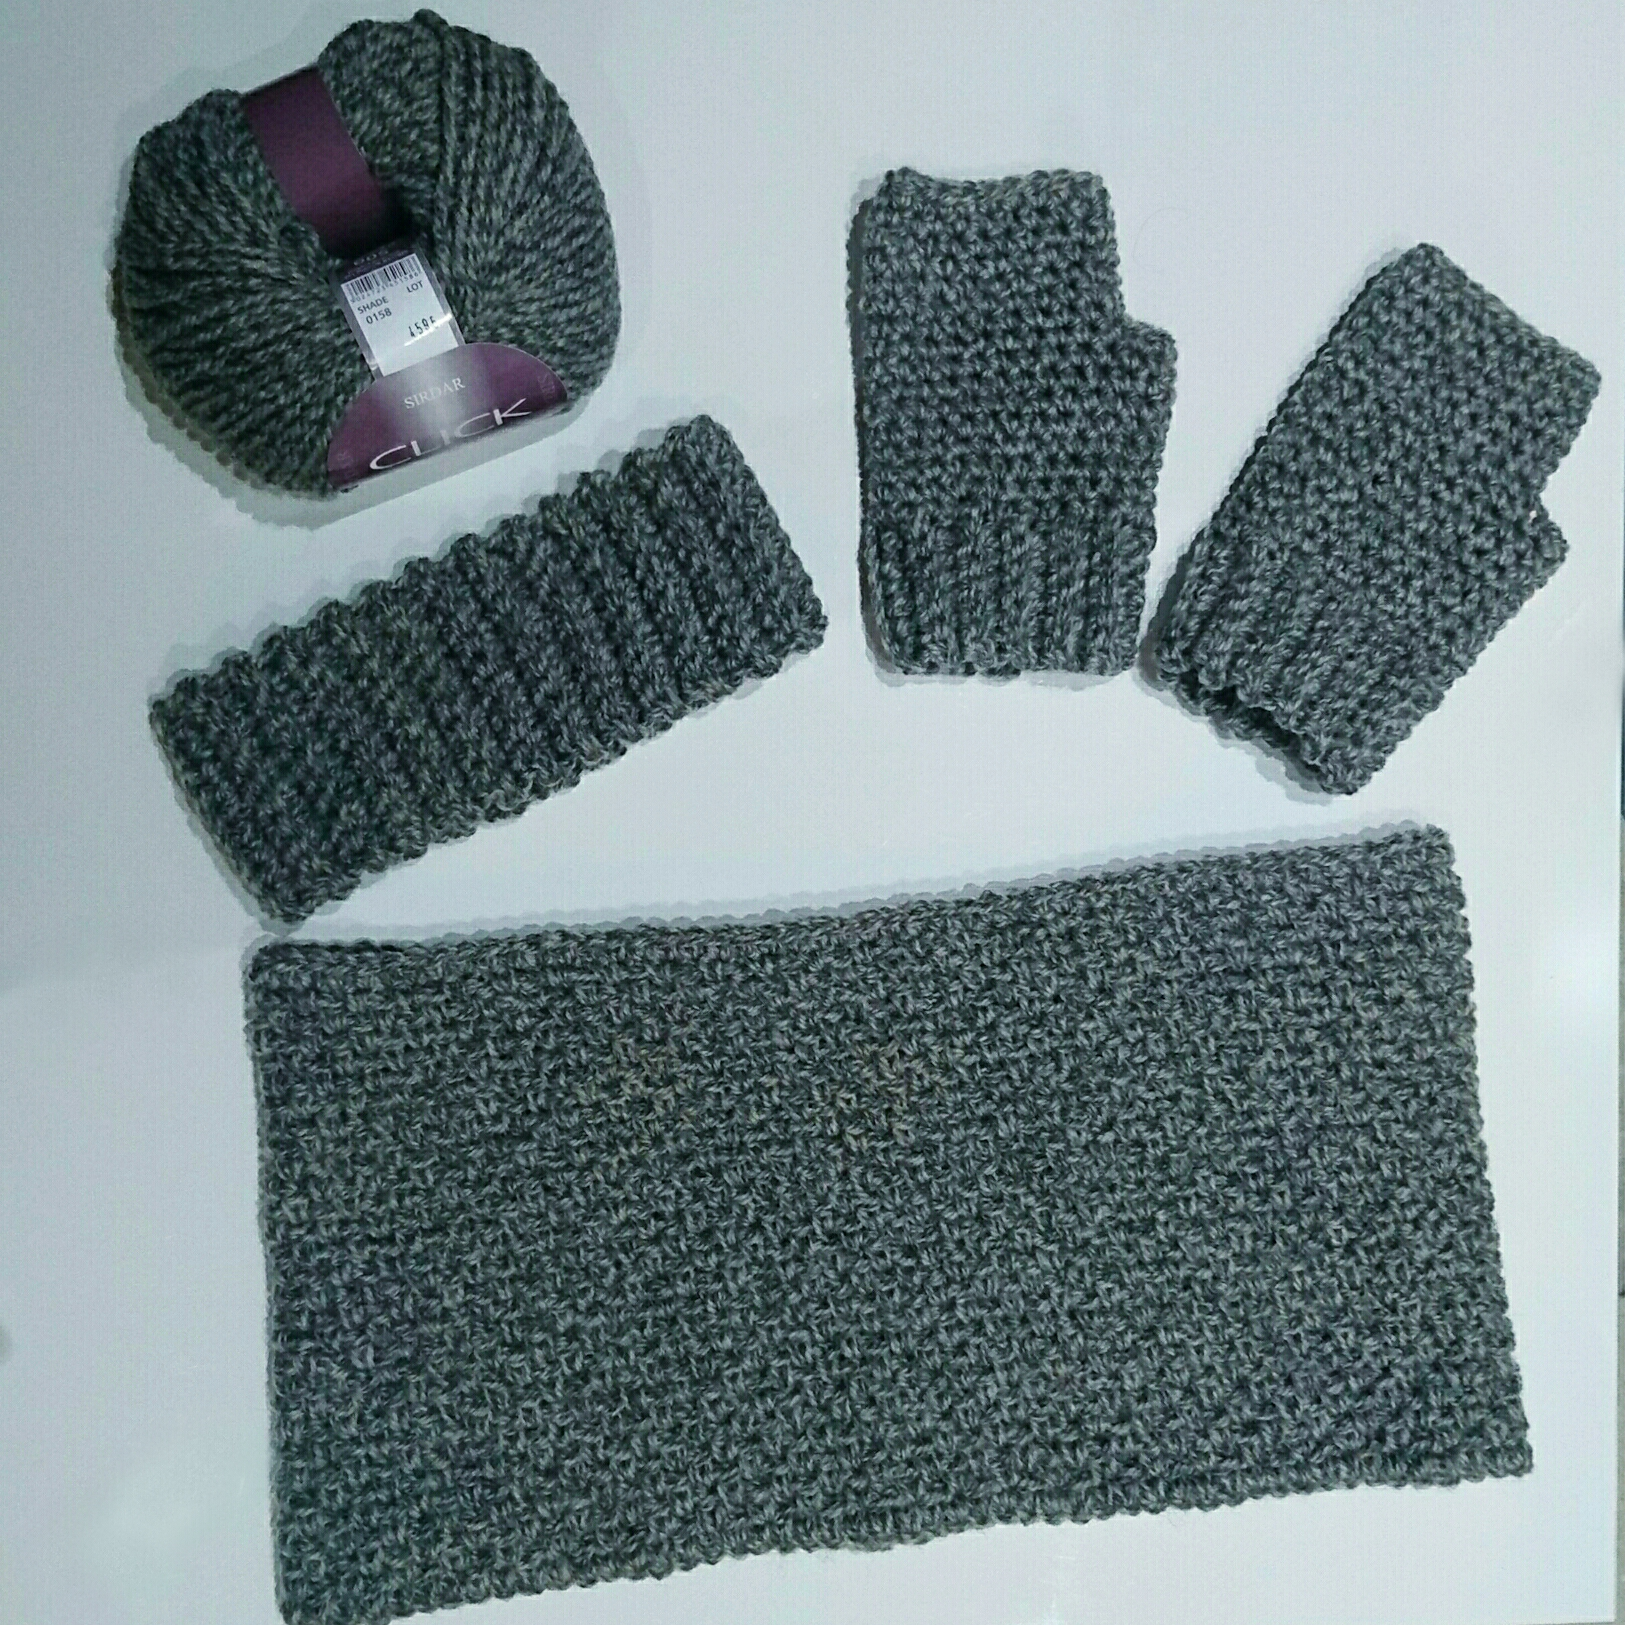 free-crochet-pattern-for-the-winter-warm-set-a-beautiful-cowl-mittens-and-ear-warmer-set